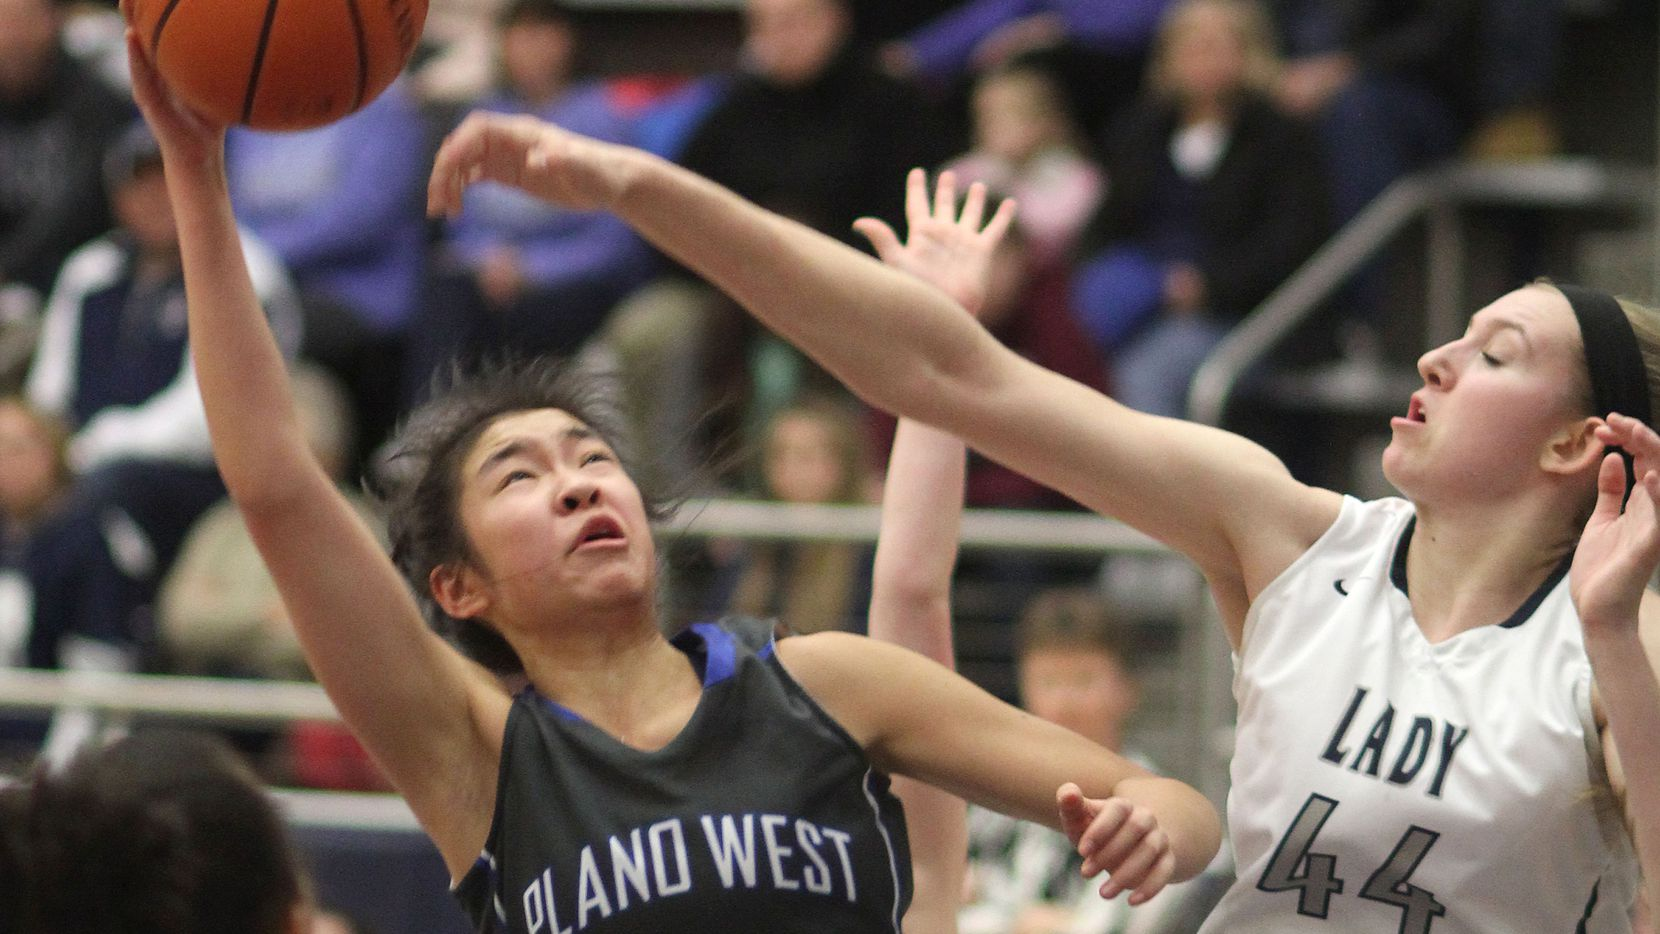 Flower Mound junior Lauren Cox (44) blocks a shot attempt by Plano West junior Natalie Chou (24) in the first half of their basketball game at Flower Mound High School on Friday, January 9, 2015. (Photo taken by Kelley Chinn/Special Contributor)